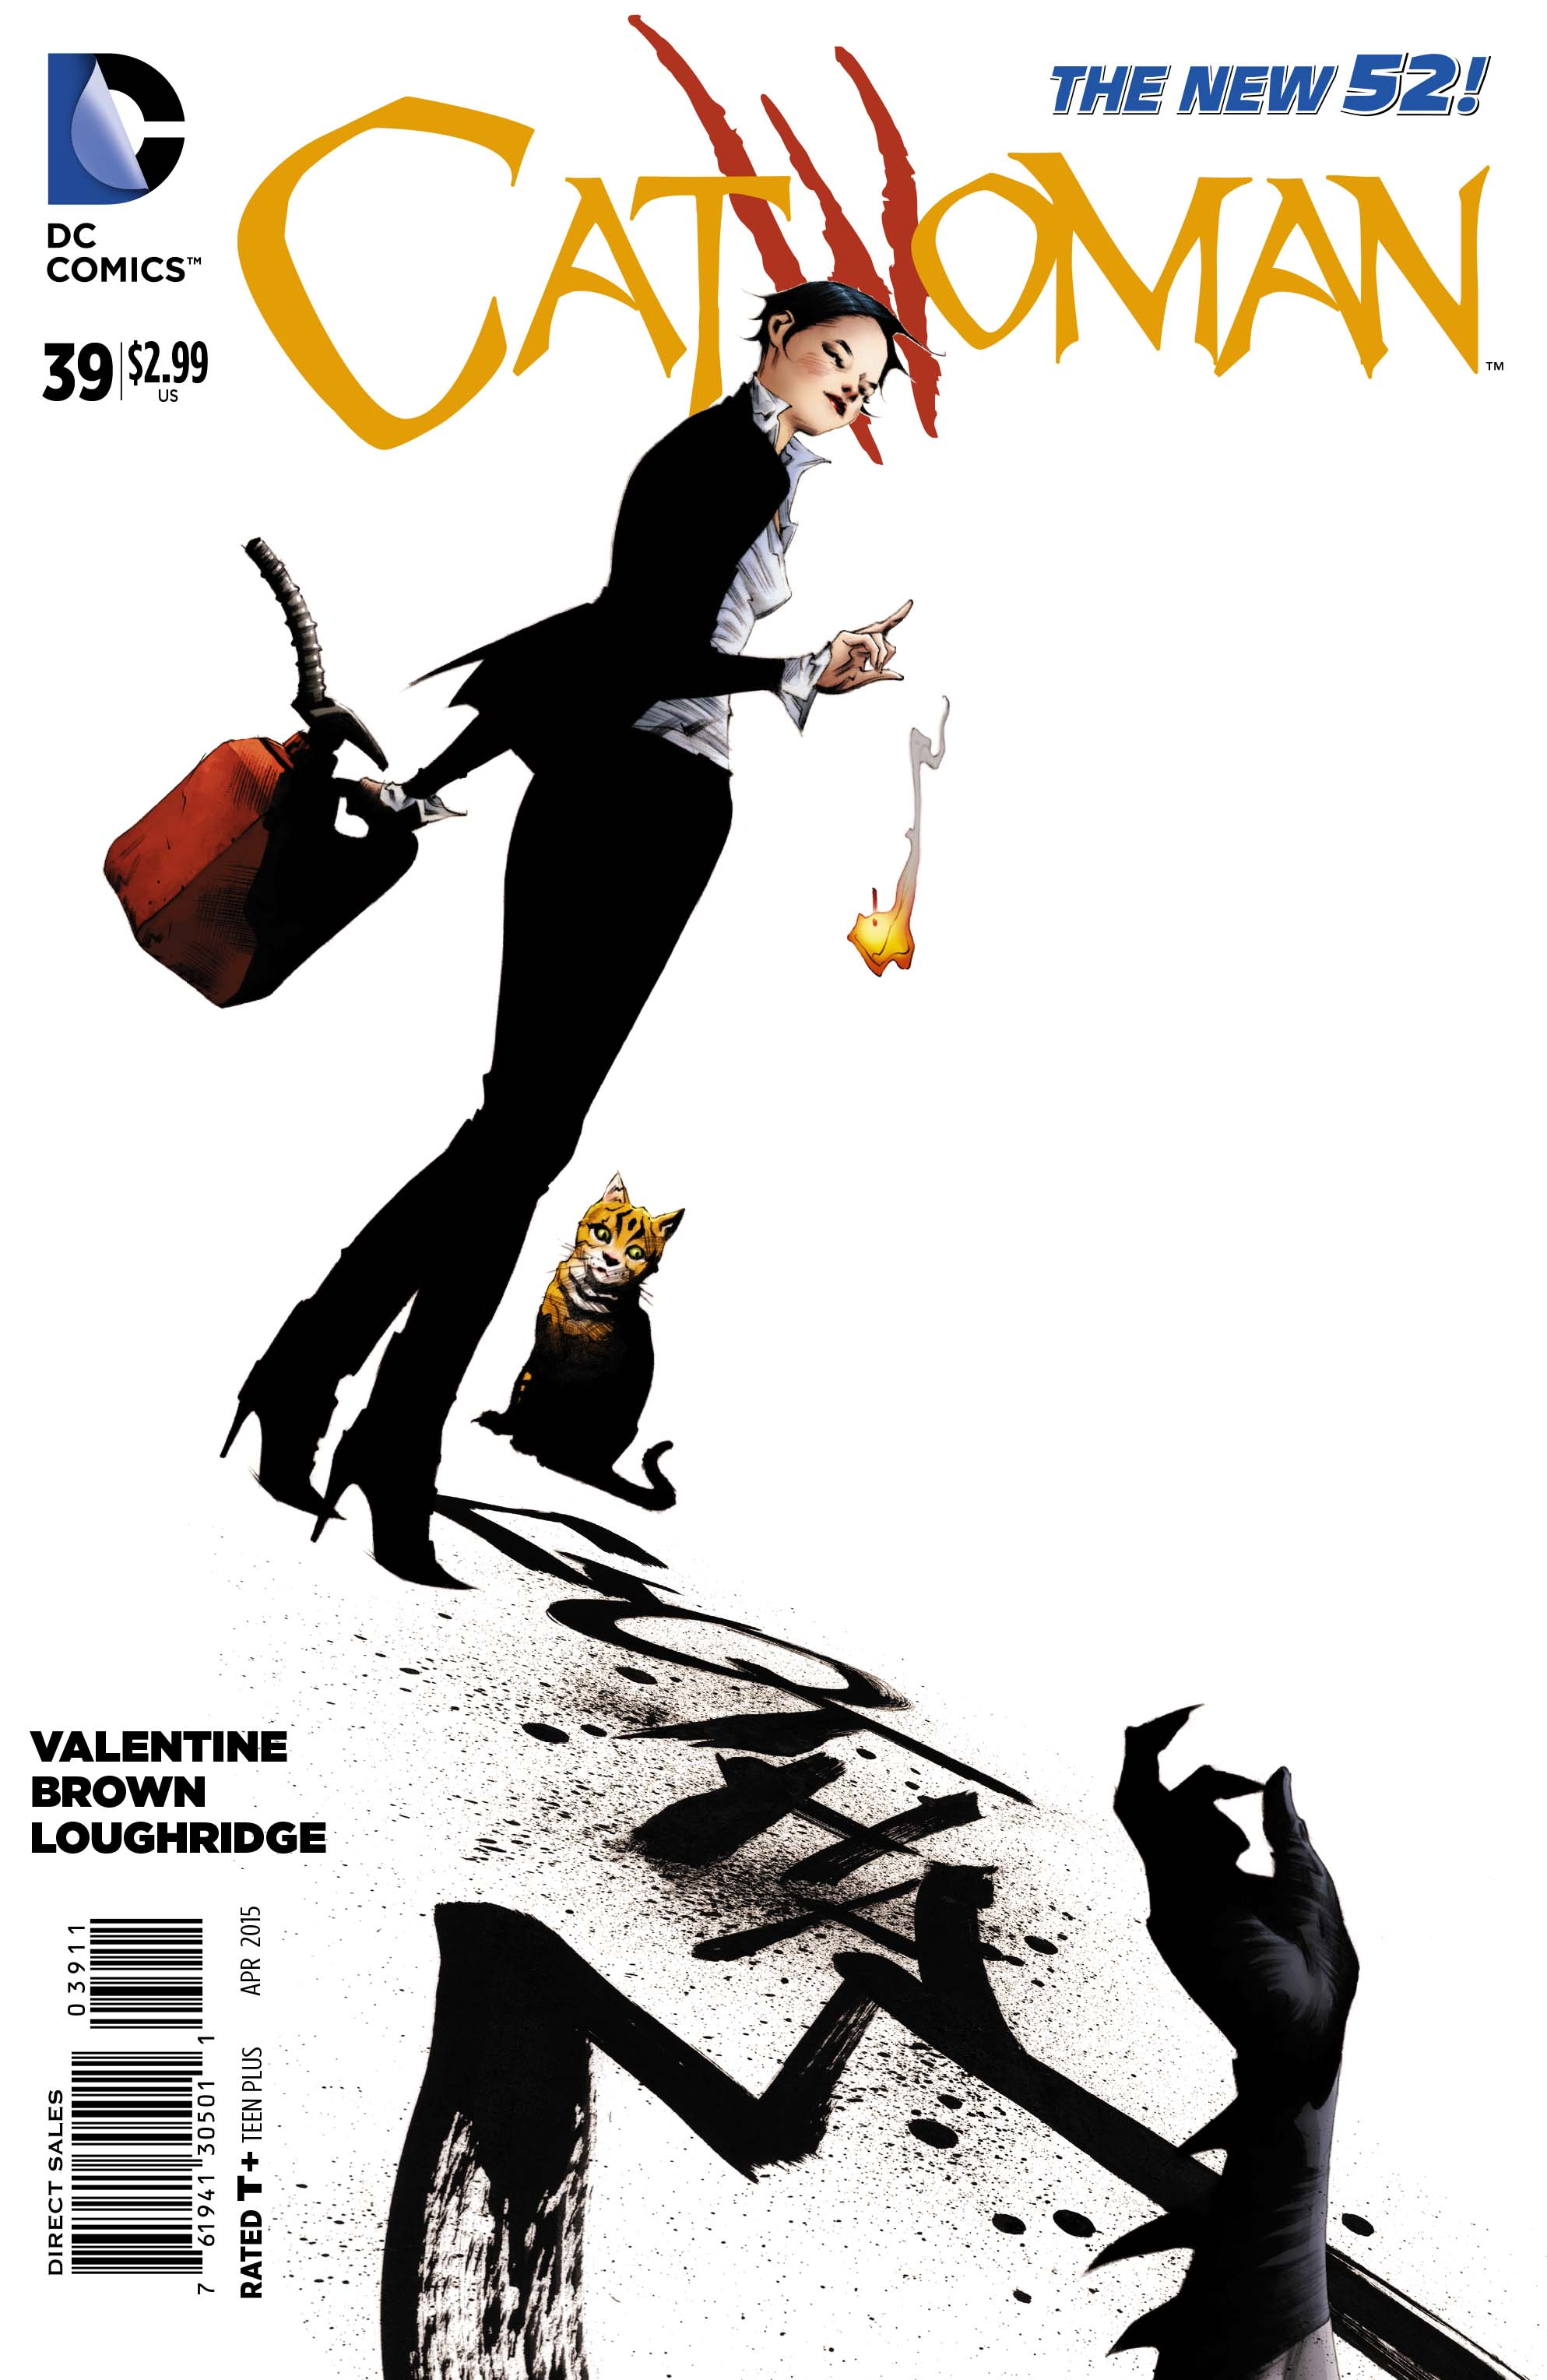 Cover art by Jae Lee